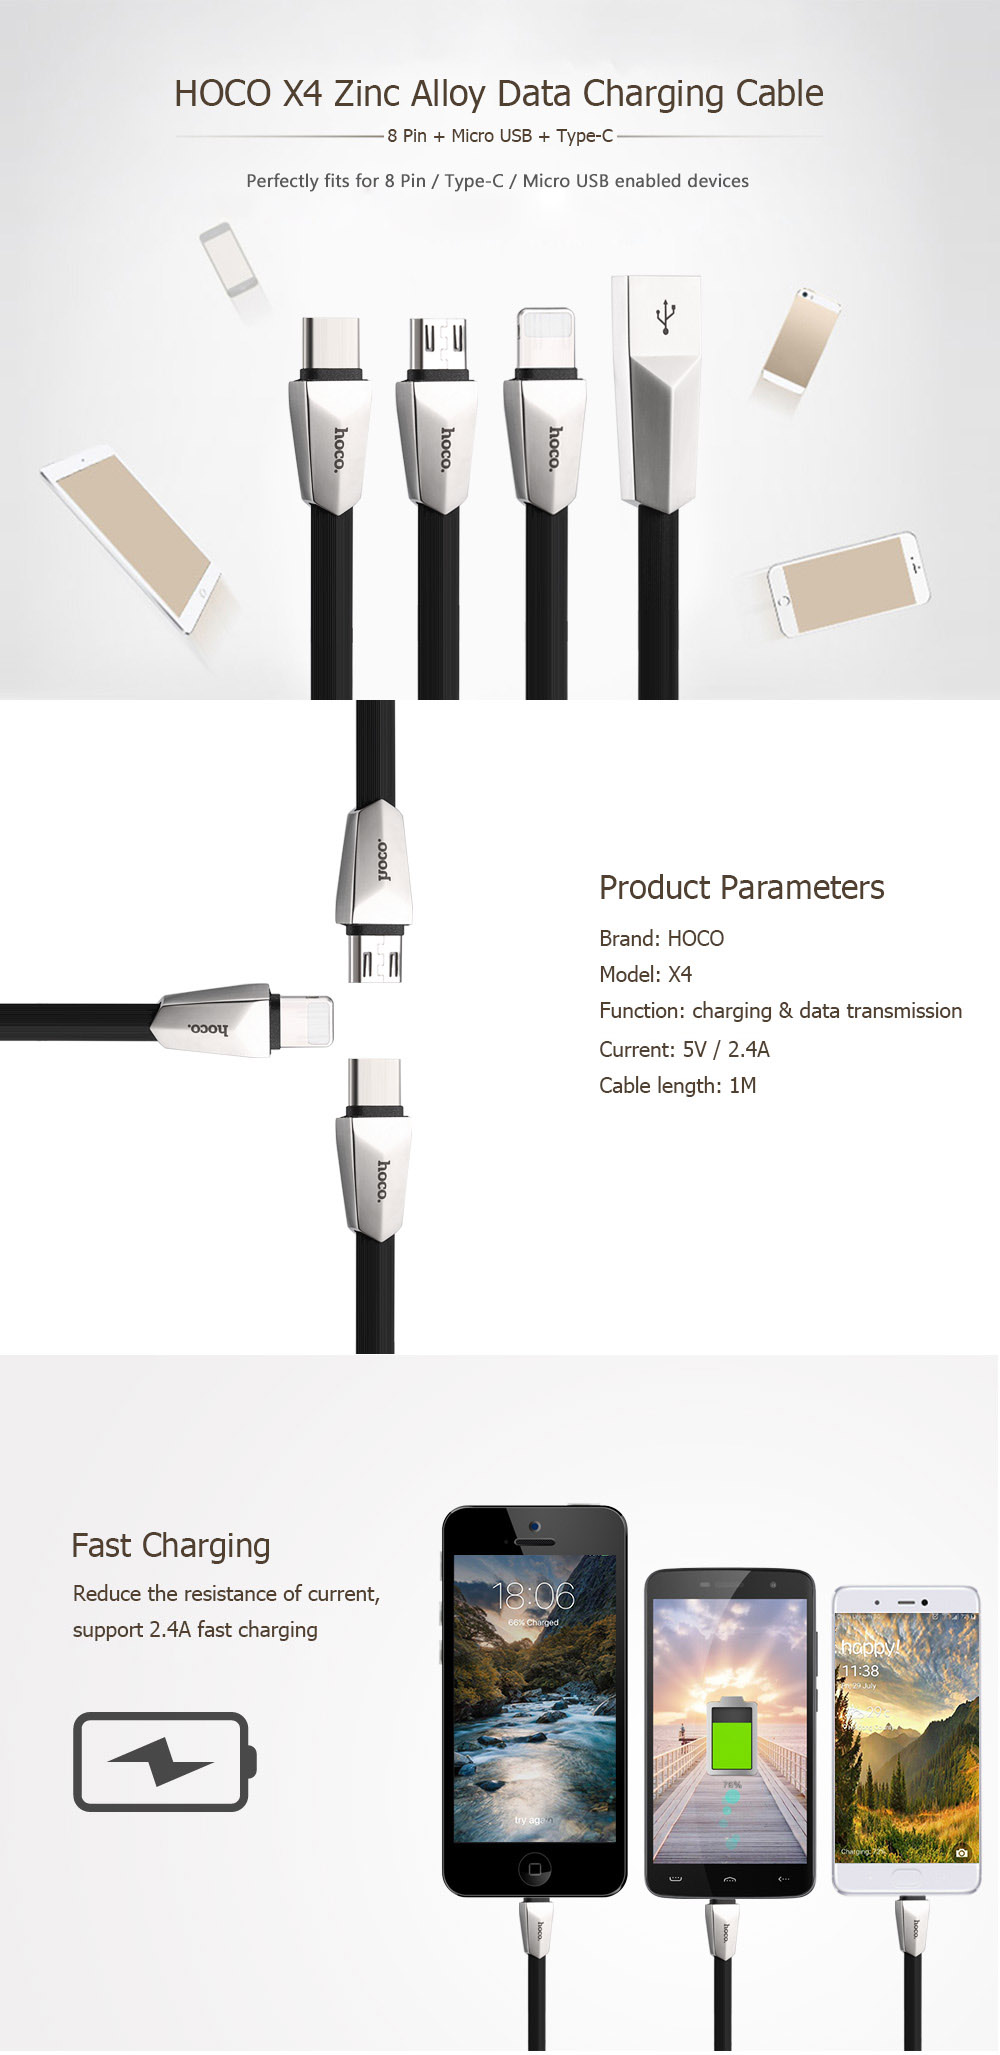 HOCO X4 3 in 1 8 Pin Micro USB Type-C Zinc Alloy Rhombic Fast Charging Data Transfer Cable 1M